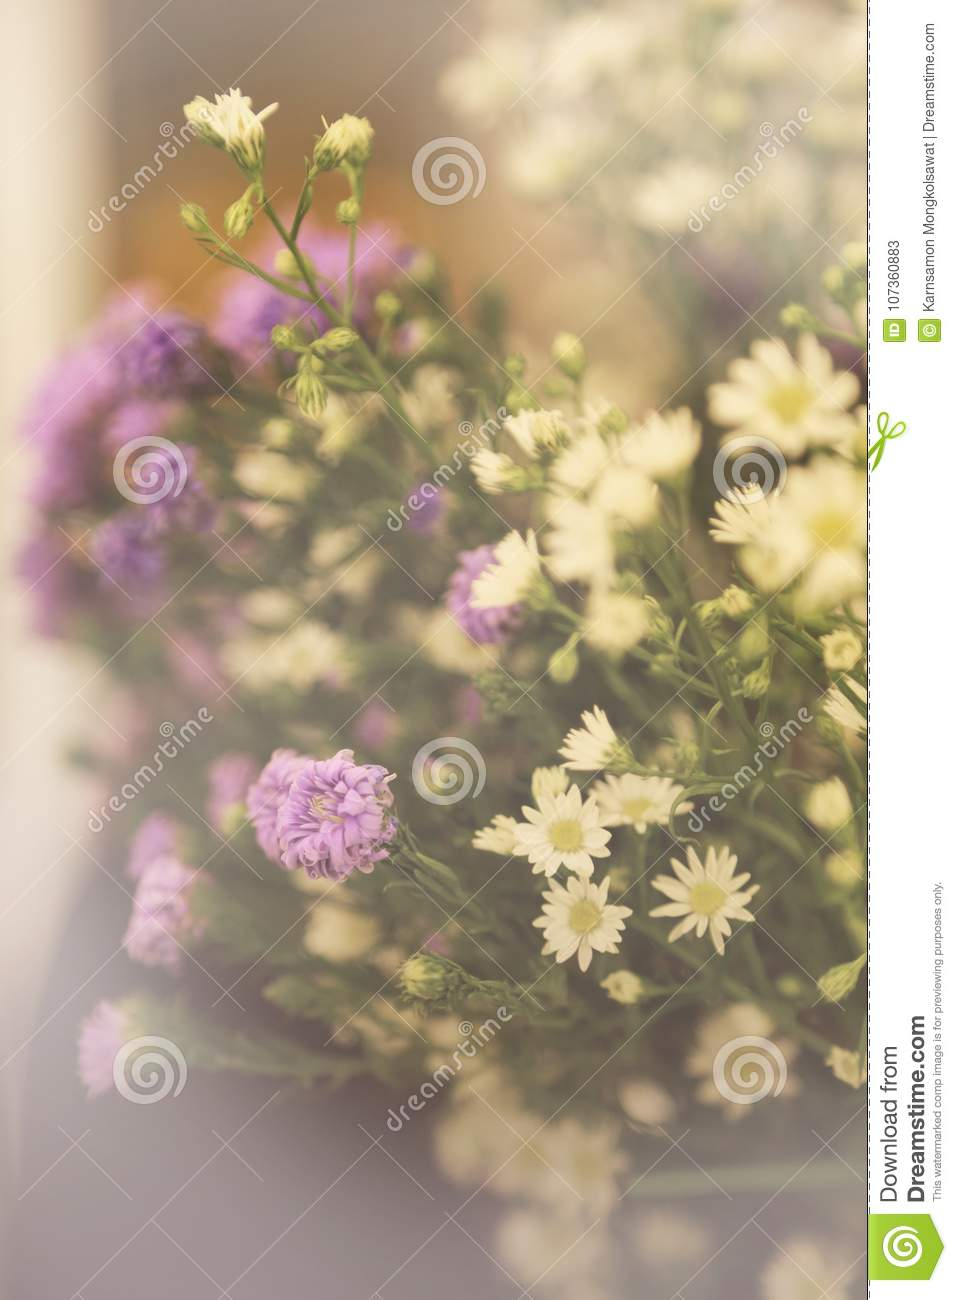 Sweet And Soft Bouquets With Small Purple And White Flowers Stock